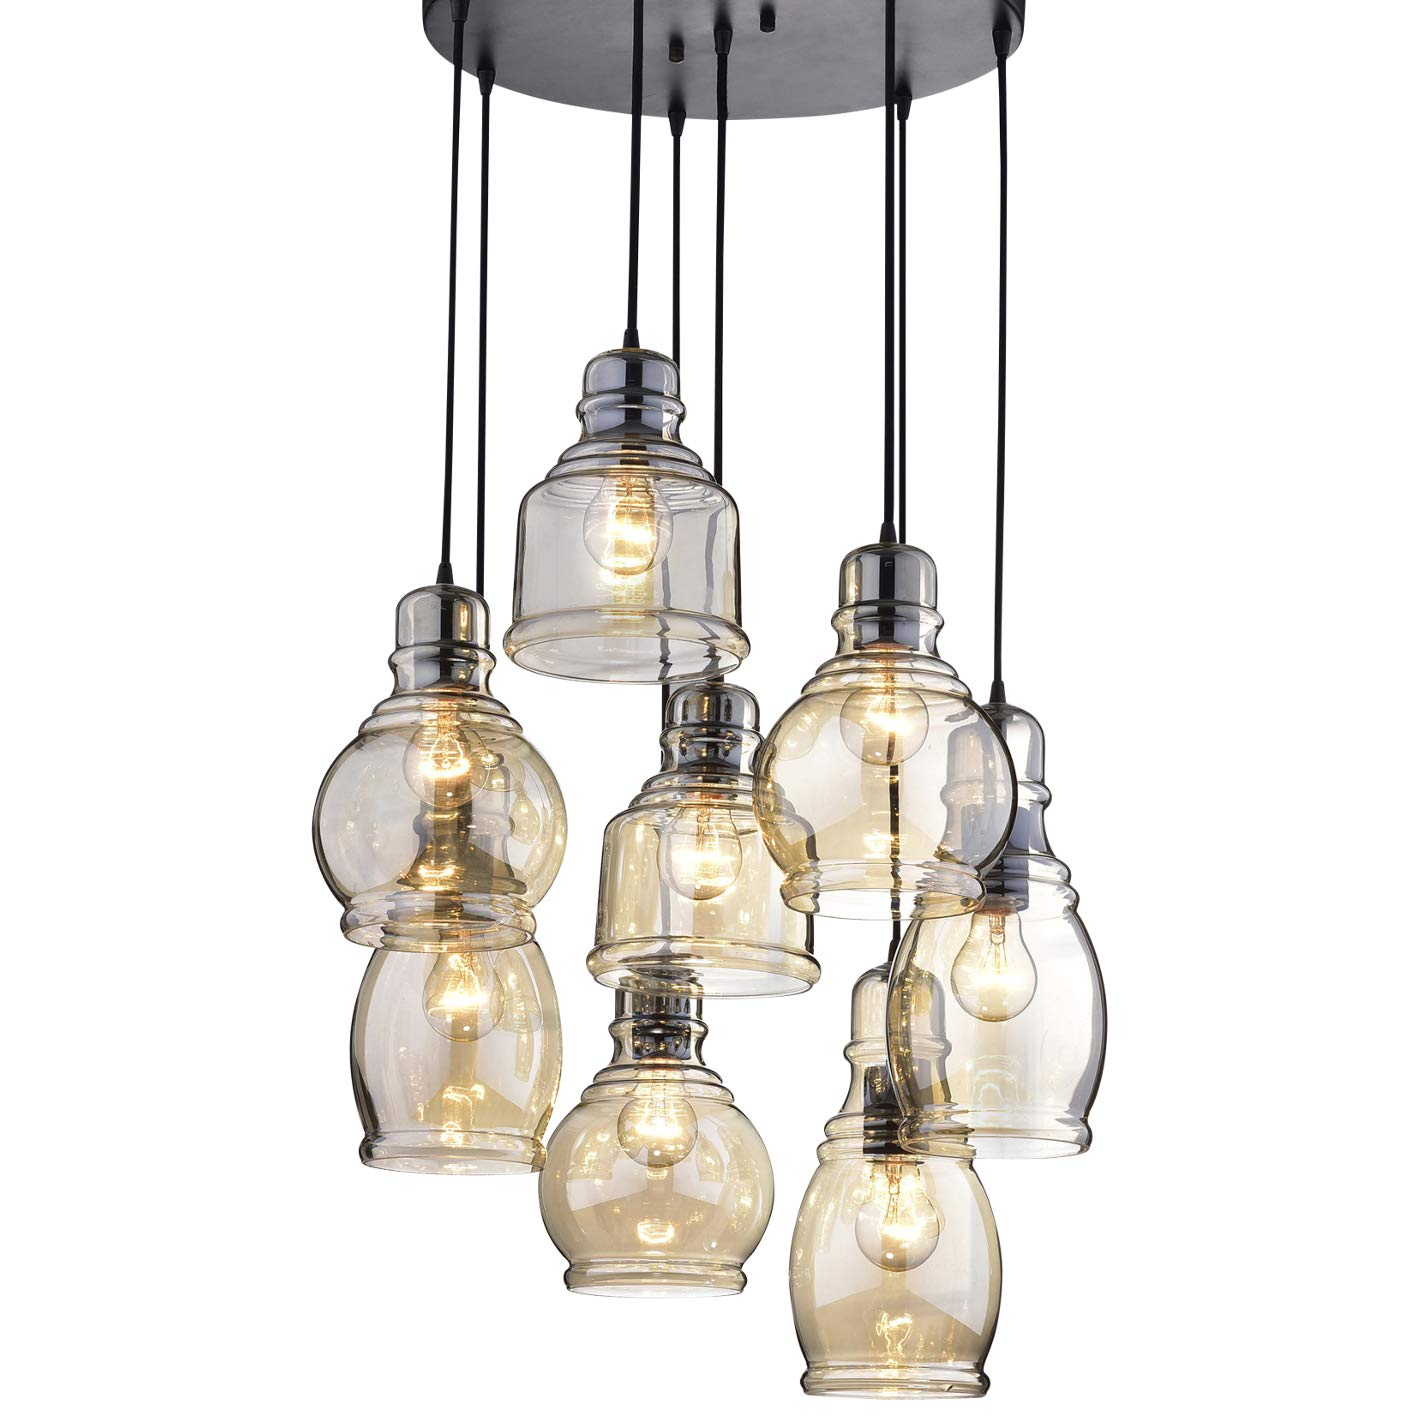 Circular Light Fixture for Dining Rooms and Kitchen Areas | Glass Chandelier Centerpiece Provides Ample Lighting | Round Indoor Hanging Lamp Set Descends from Ceiling to Create Modern Farmhouse Feel